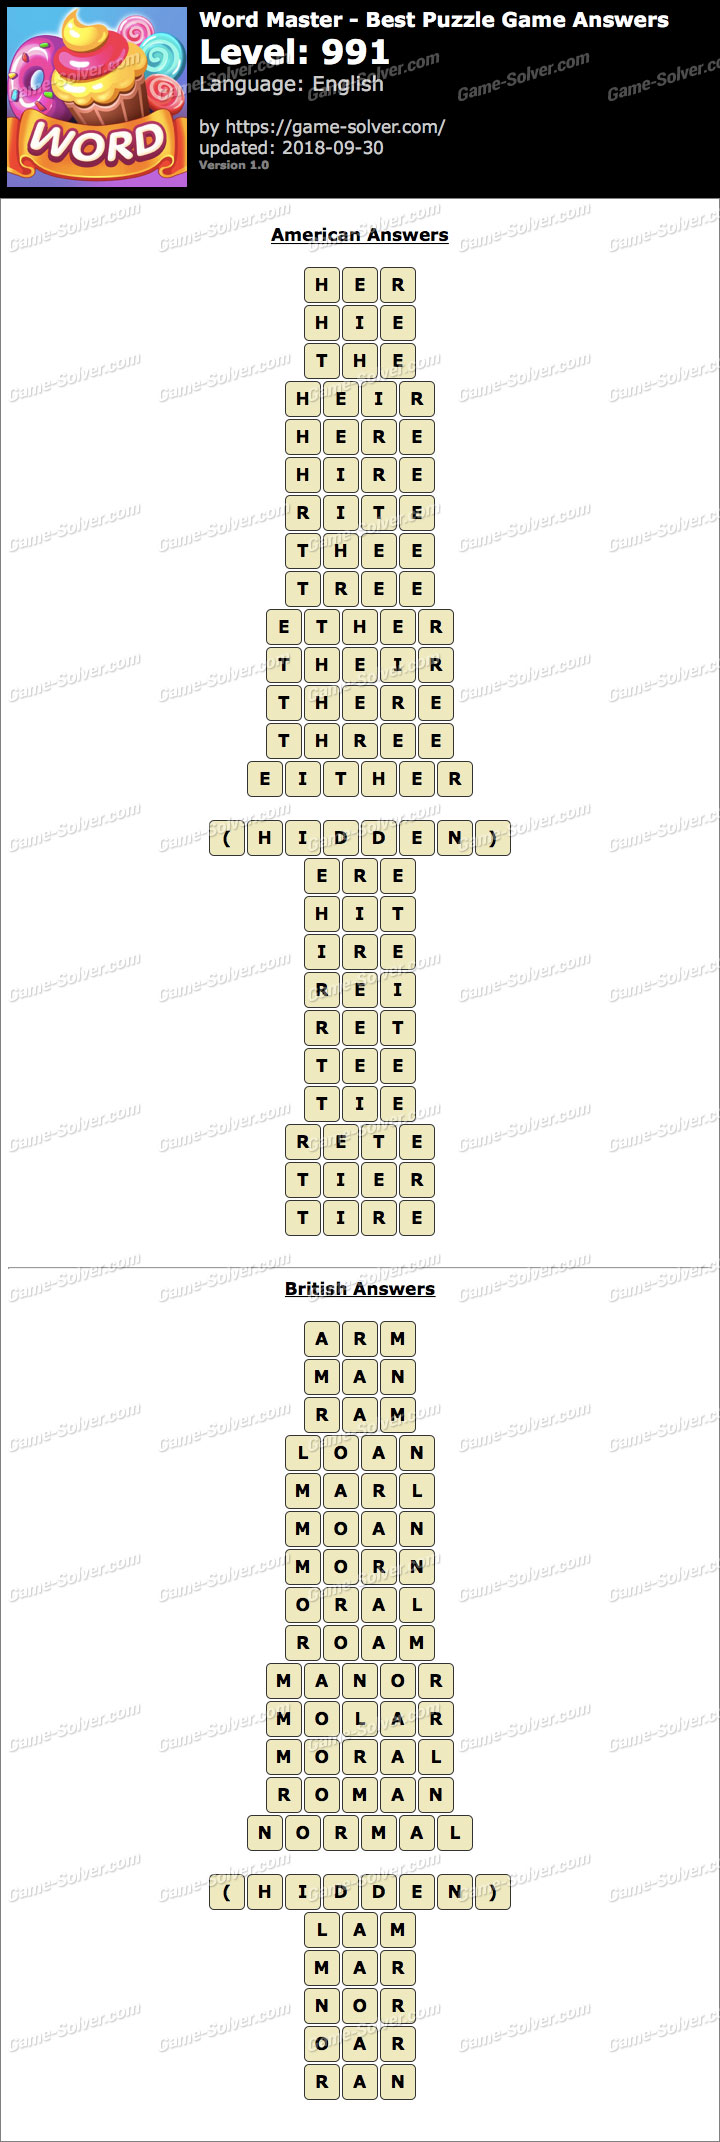 Word Master-Best Puzzle Game Level 991 Answers